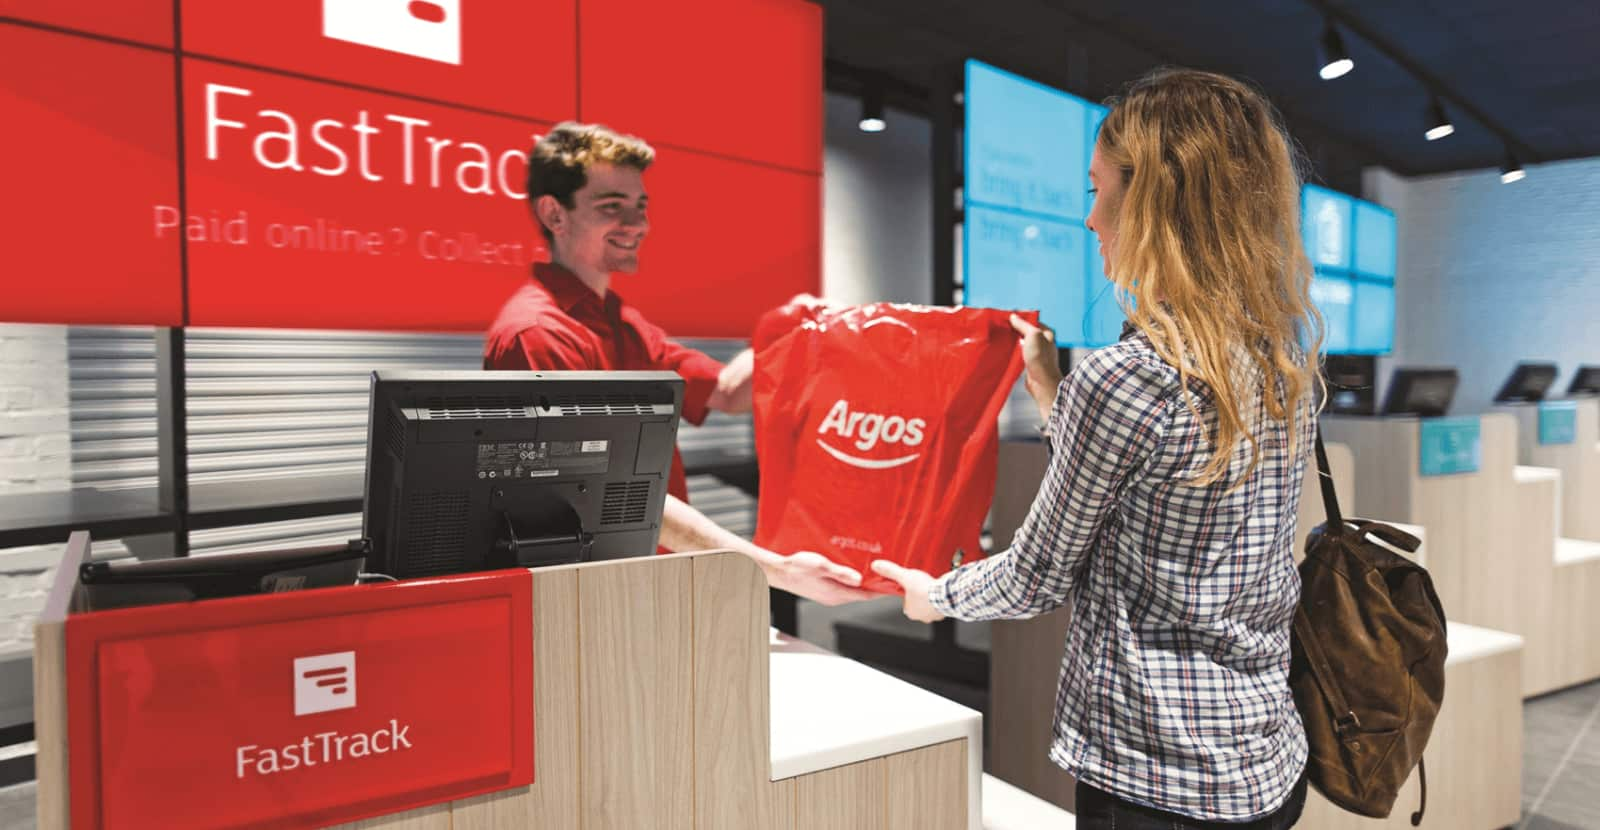 argos-service-vision-and-standards-by-engine